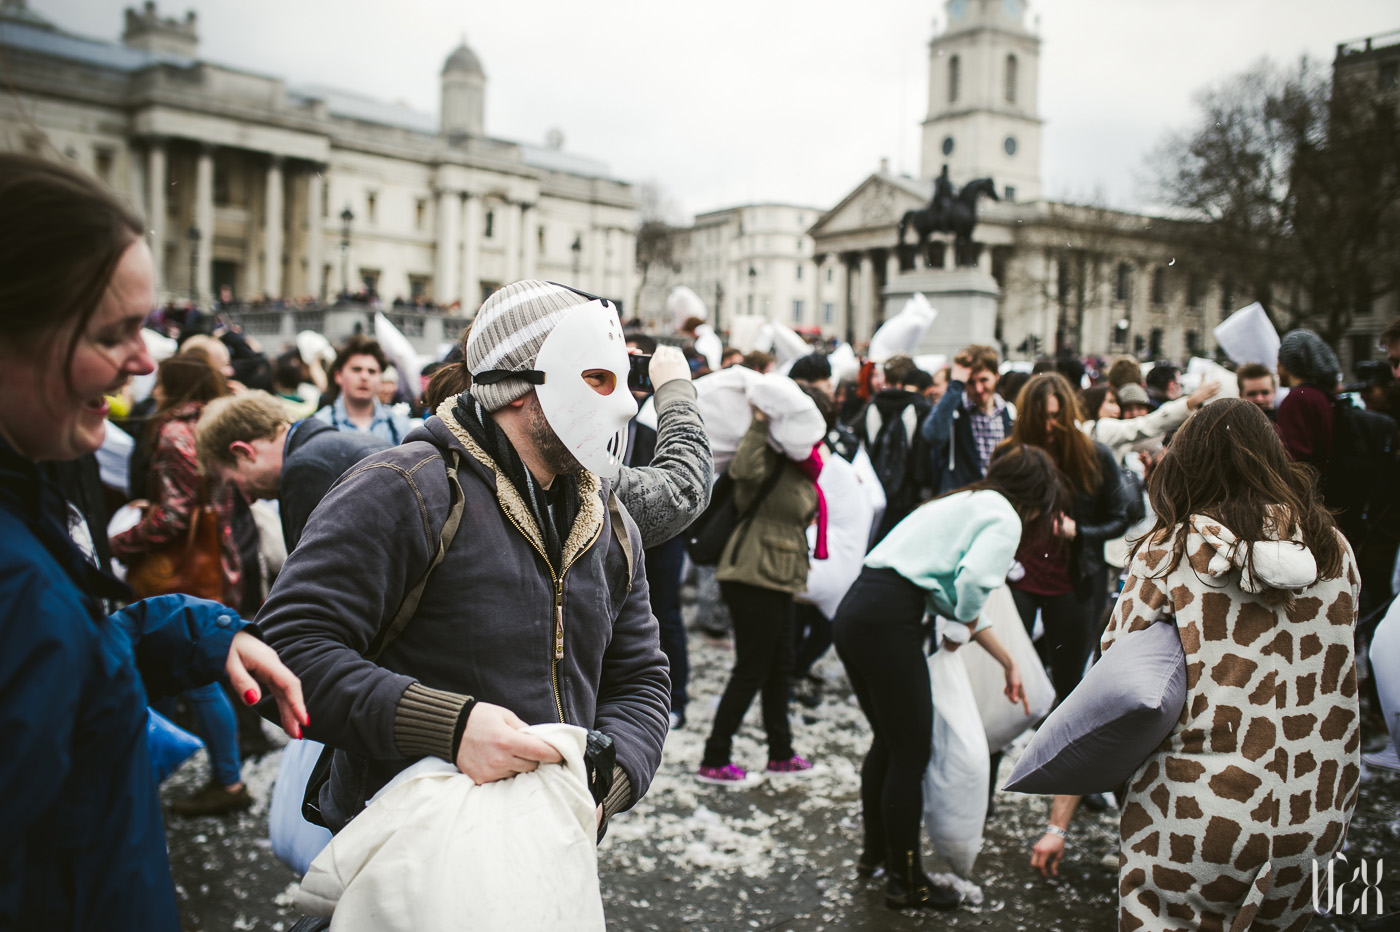 International Pillow Fight Day In London 2015 Street Photography Pagalviu Musis 24